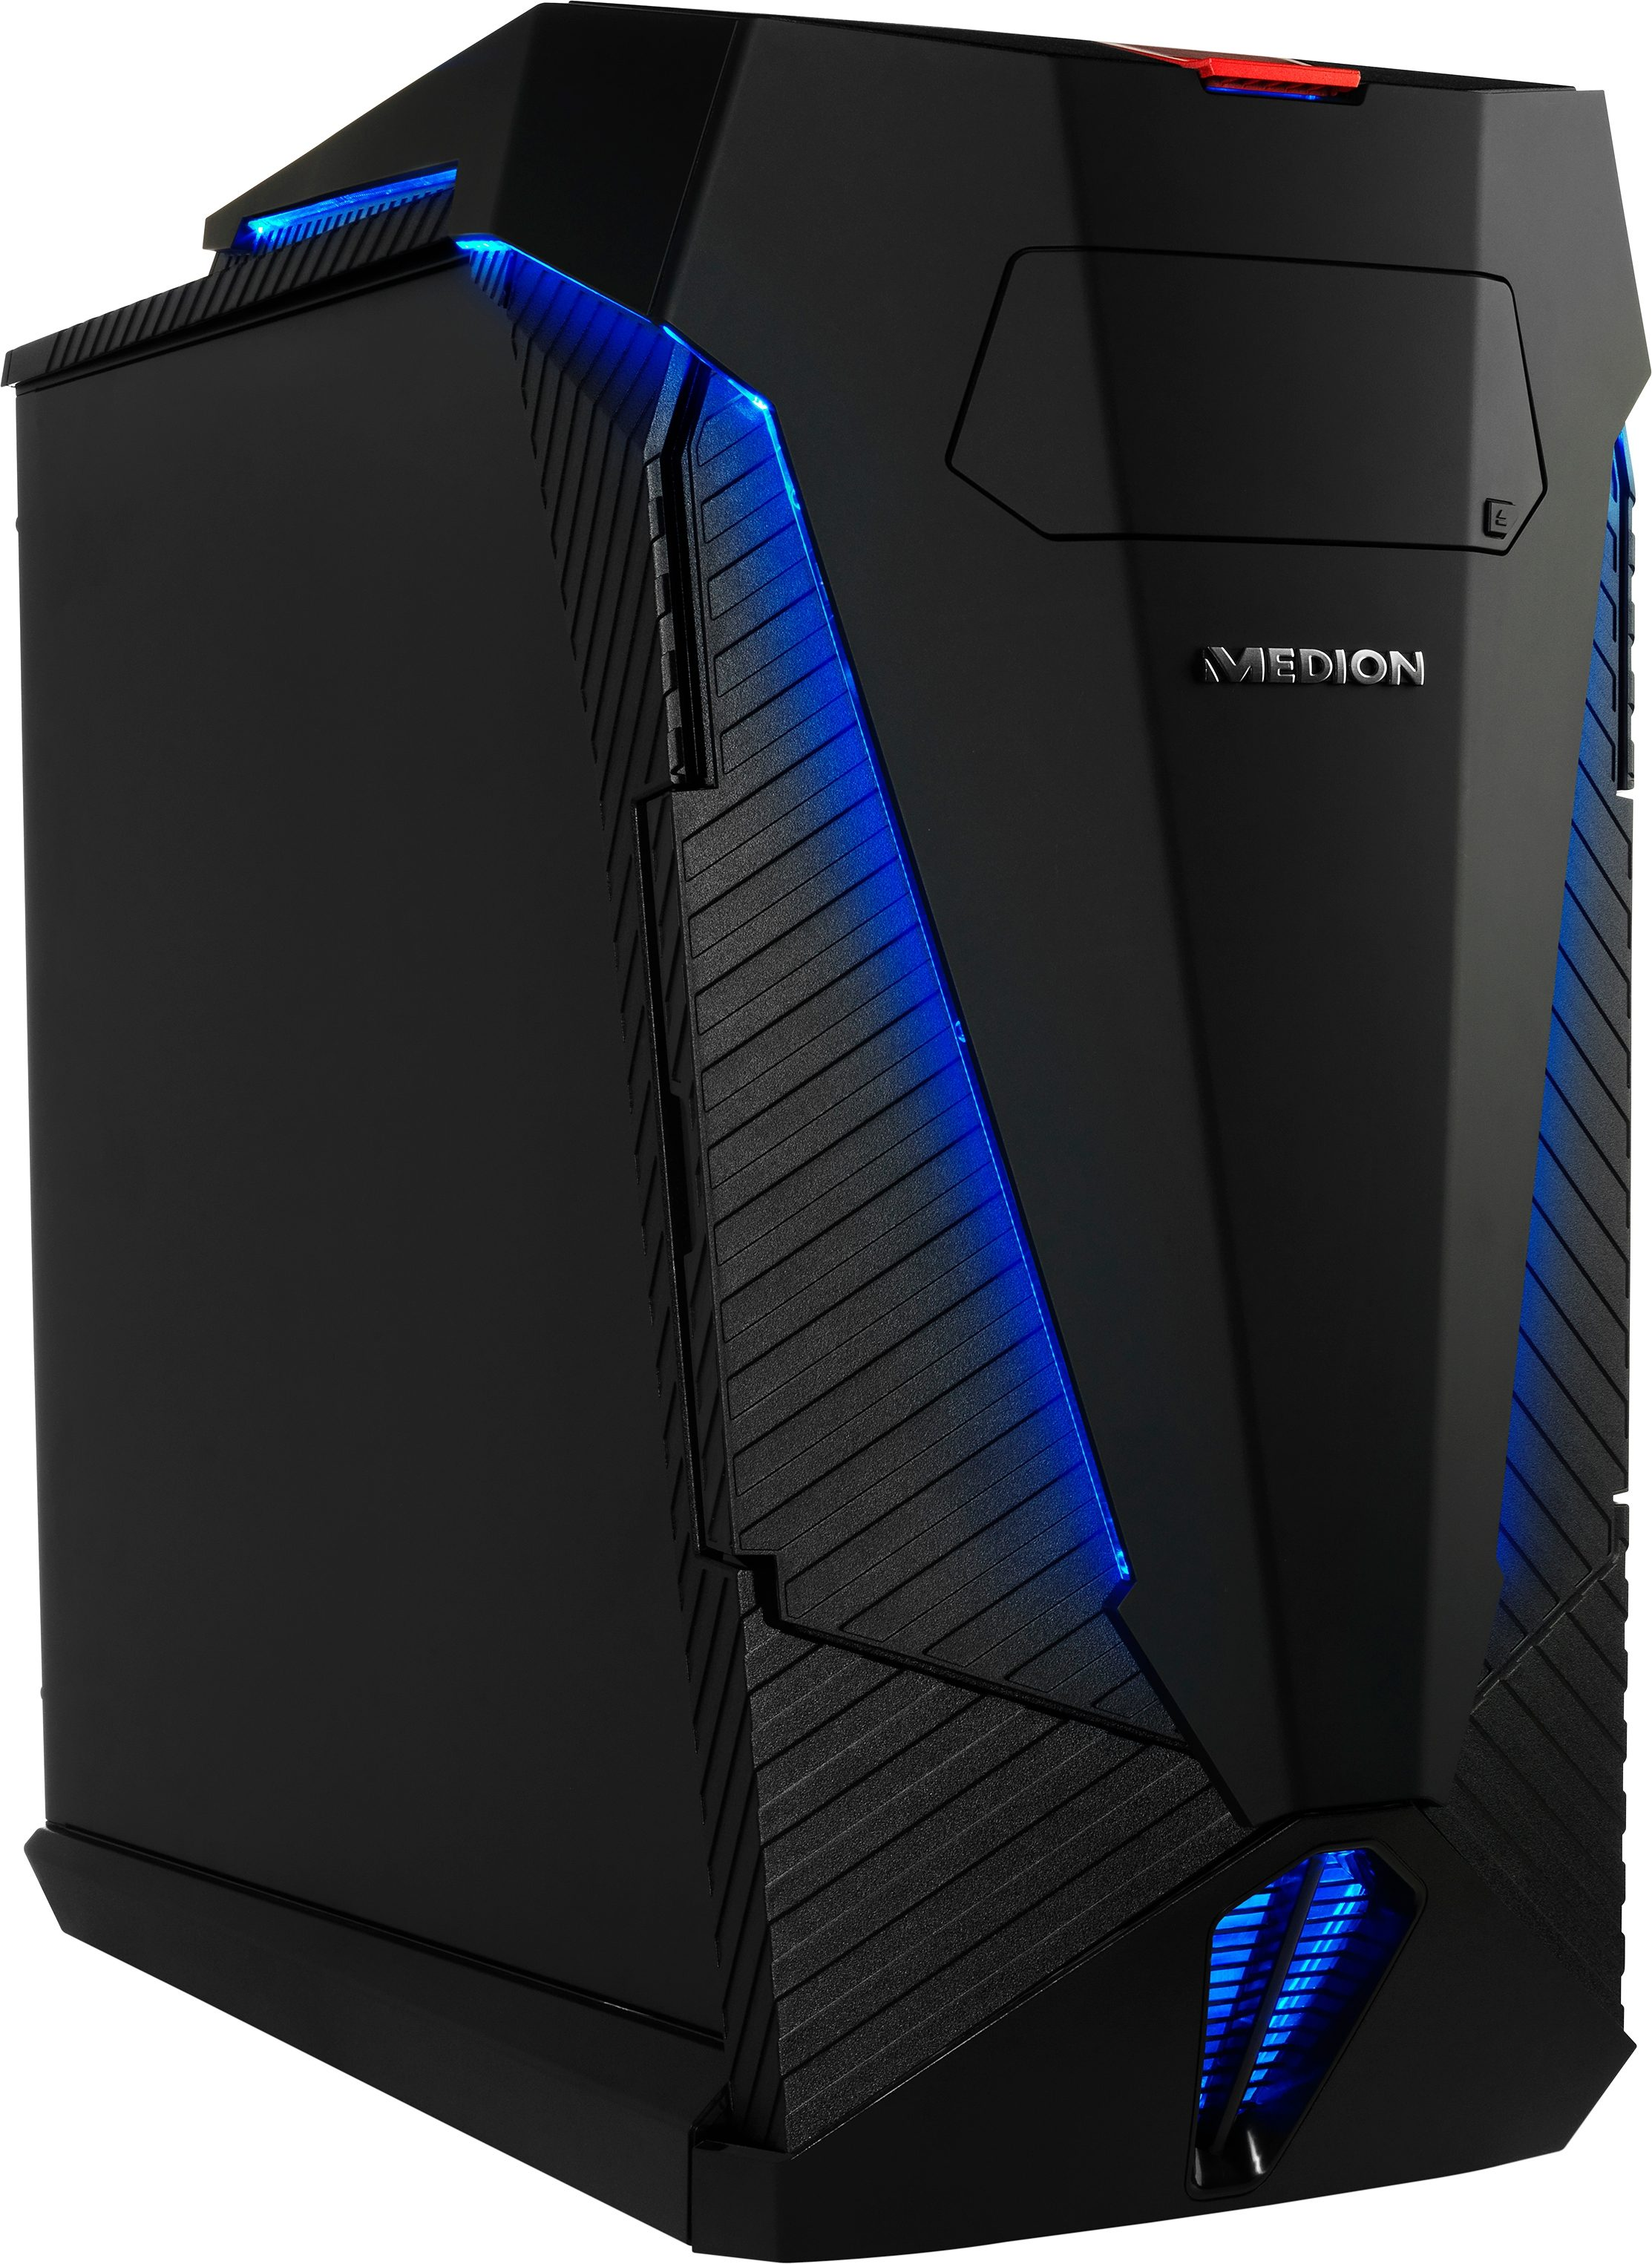 Medion® Erazer X5338F, B630 DE Gaming-PC, Intel® Core™ i7, 16384 MB DDR3-RAM, 4240 GB Speicher